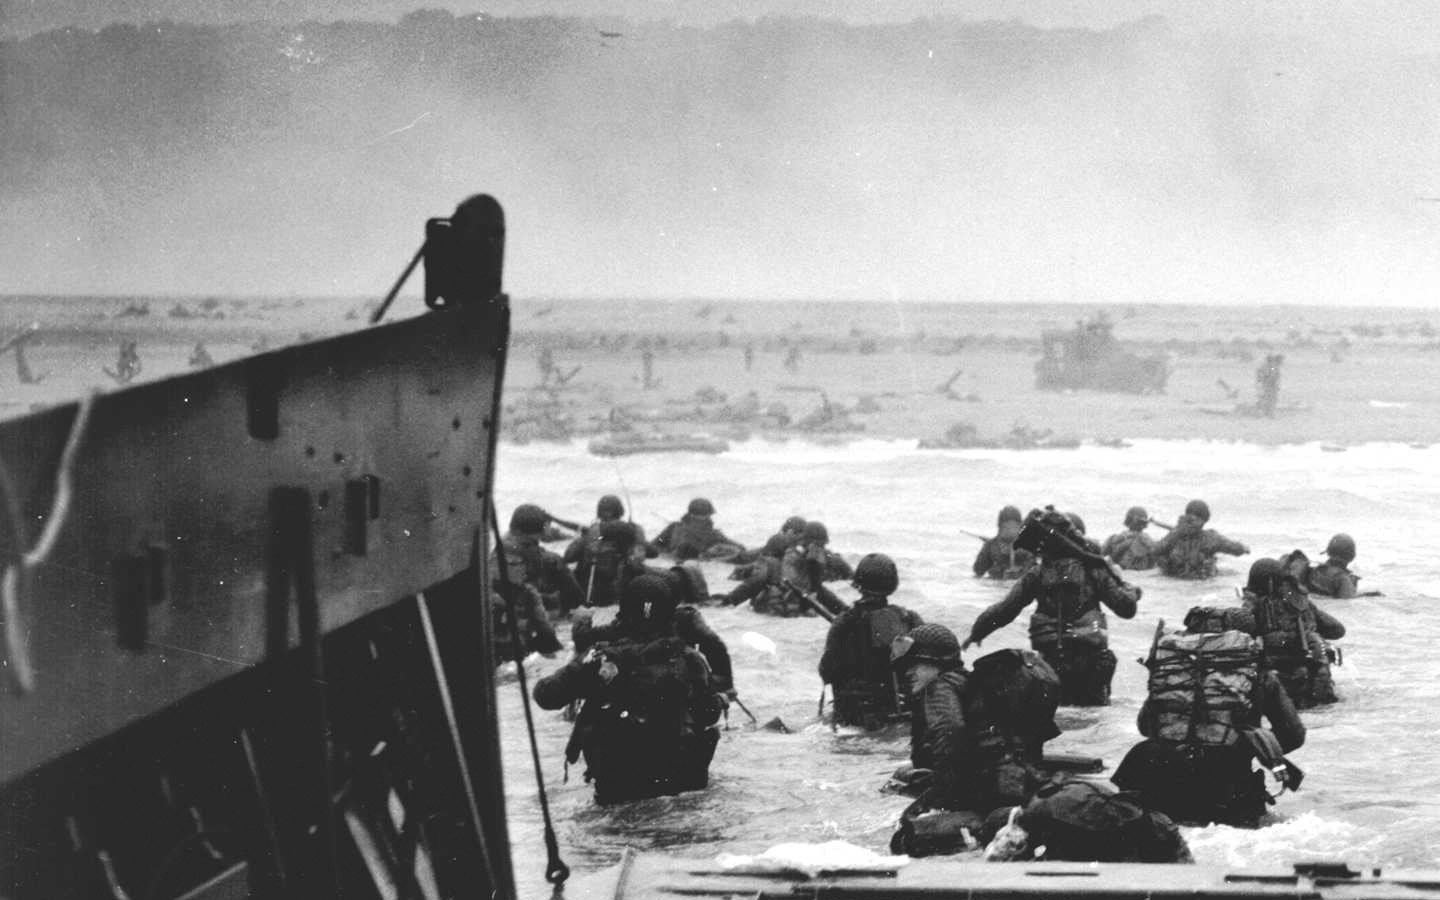 soldiers American Normandy history grayscale World War II D Day troops 1440x900